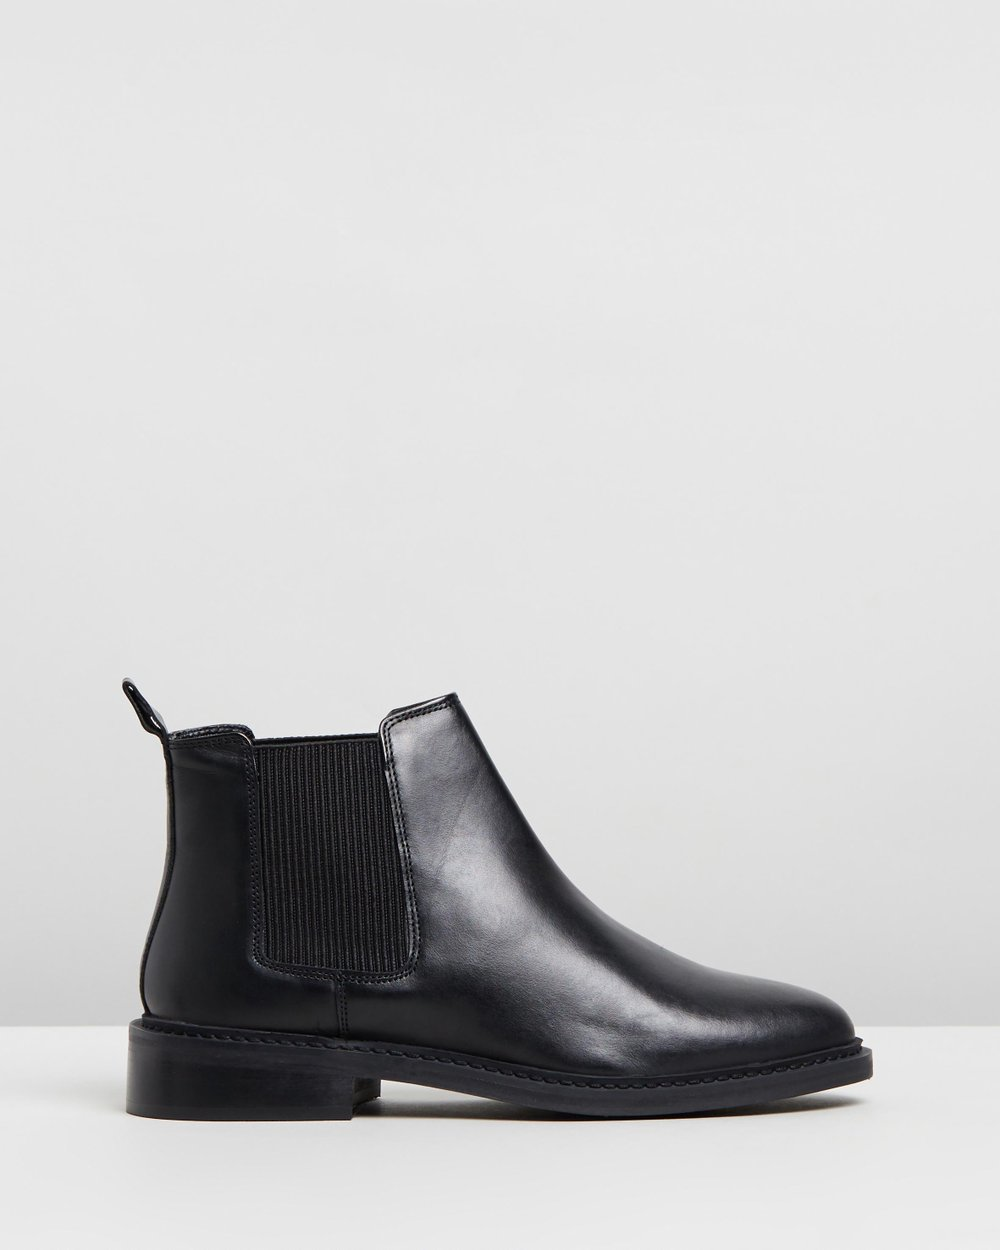 Kiss Chelsea Boots - Wide Fit by TOPSHOP Online   THE ICONIC   Australia 2c2c20138e18